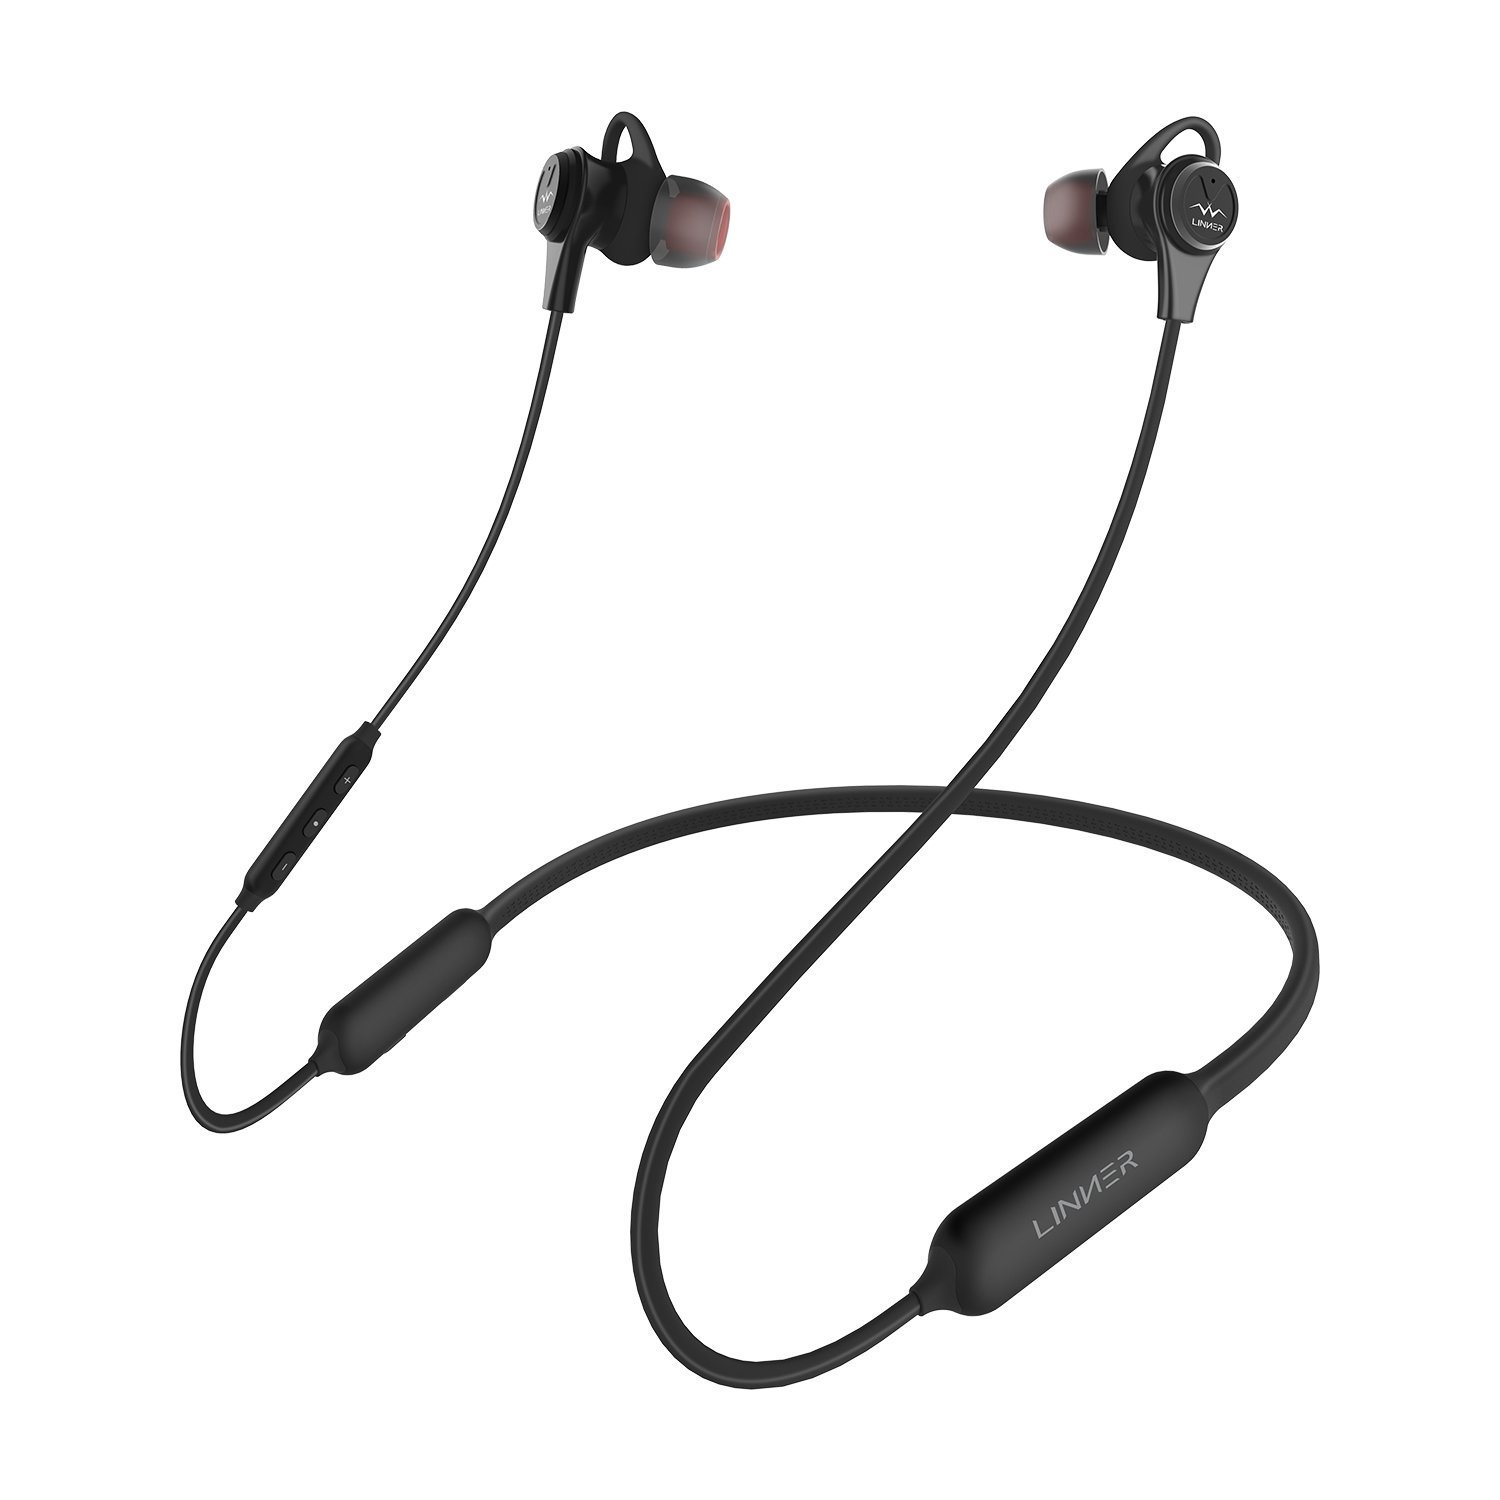 e732e79267b Amazon.com: LINNER In Ear Noise Cancelling Headphones, Wireless Bluetooth  Earbuds Extra Bass, Earbud Headphones Noise Canceling with Microphone NC50:  Home ...